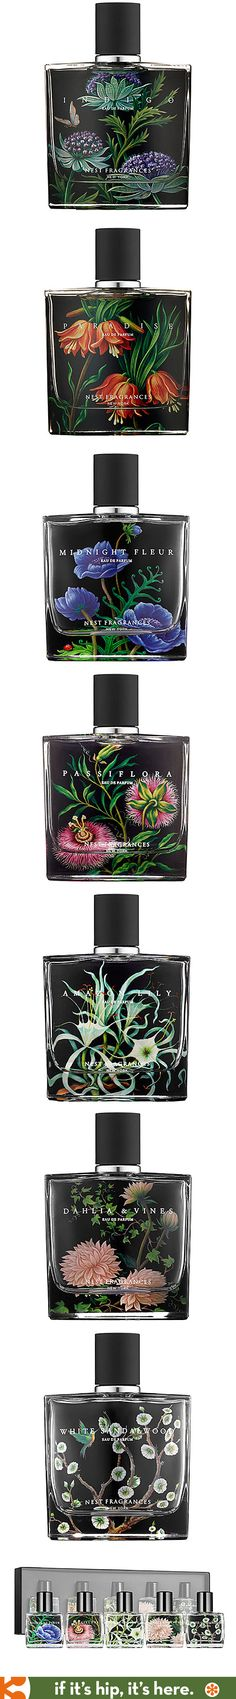 The NEST parfum collection for Sephora is some of the prettiest bottle designs I've ever seen. PD